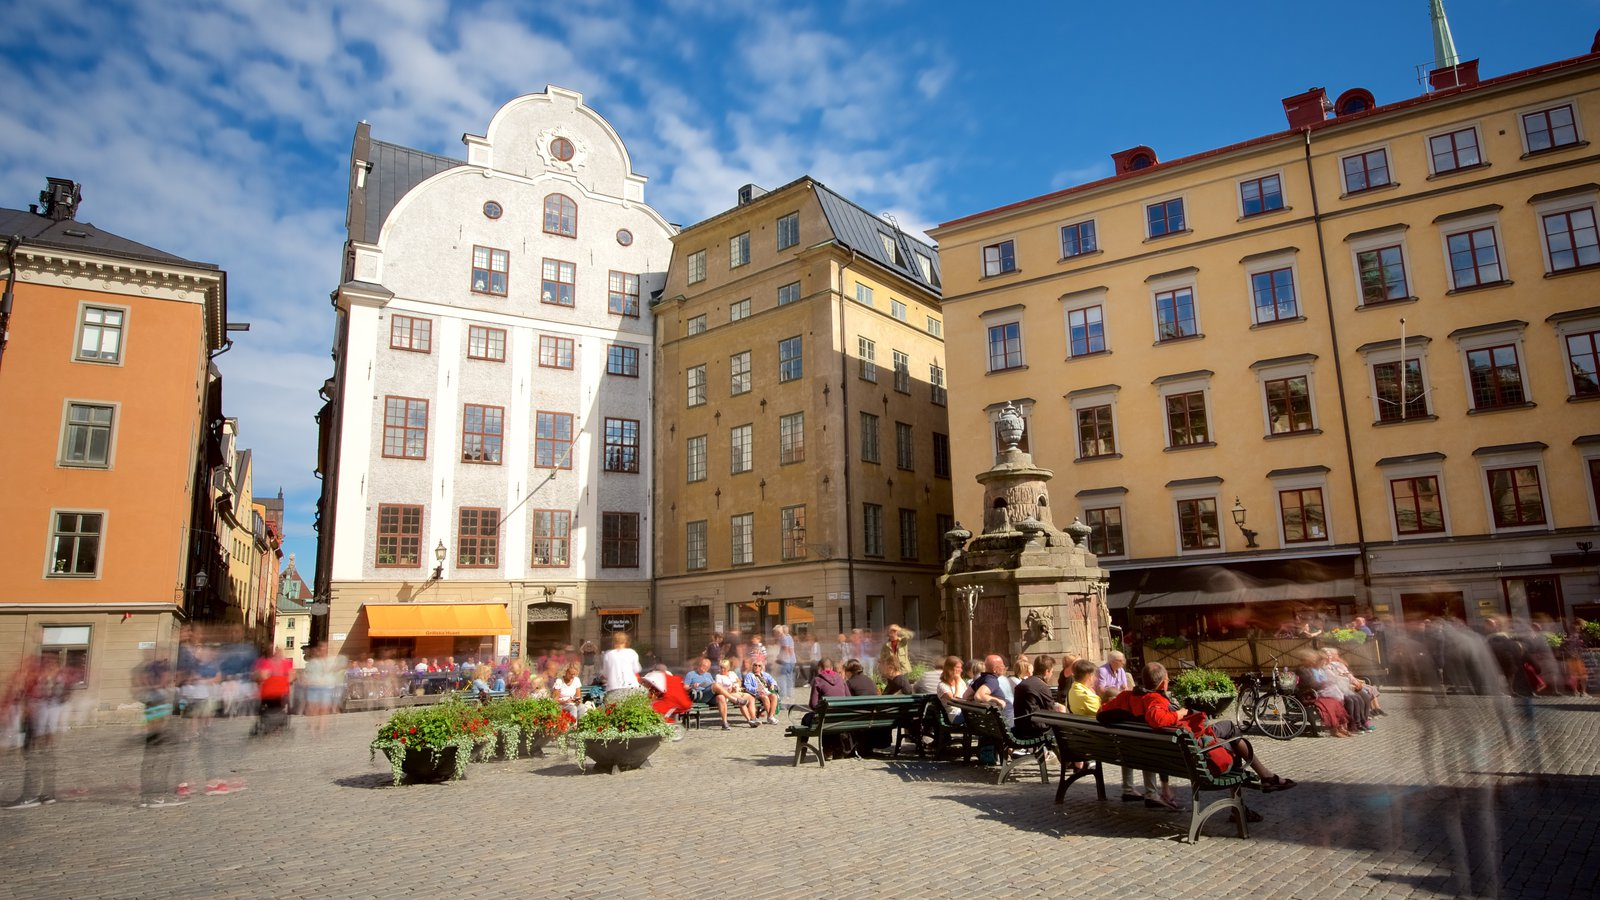 Stortorget featuring a square or plaza and heritage architecture